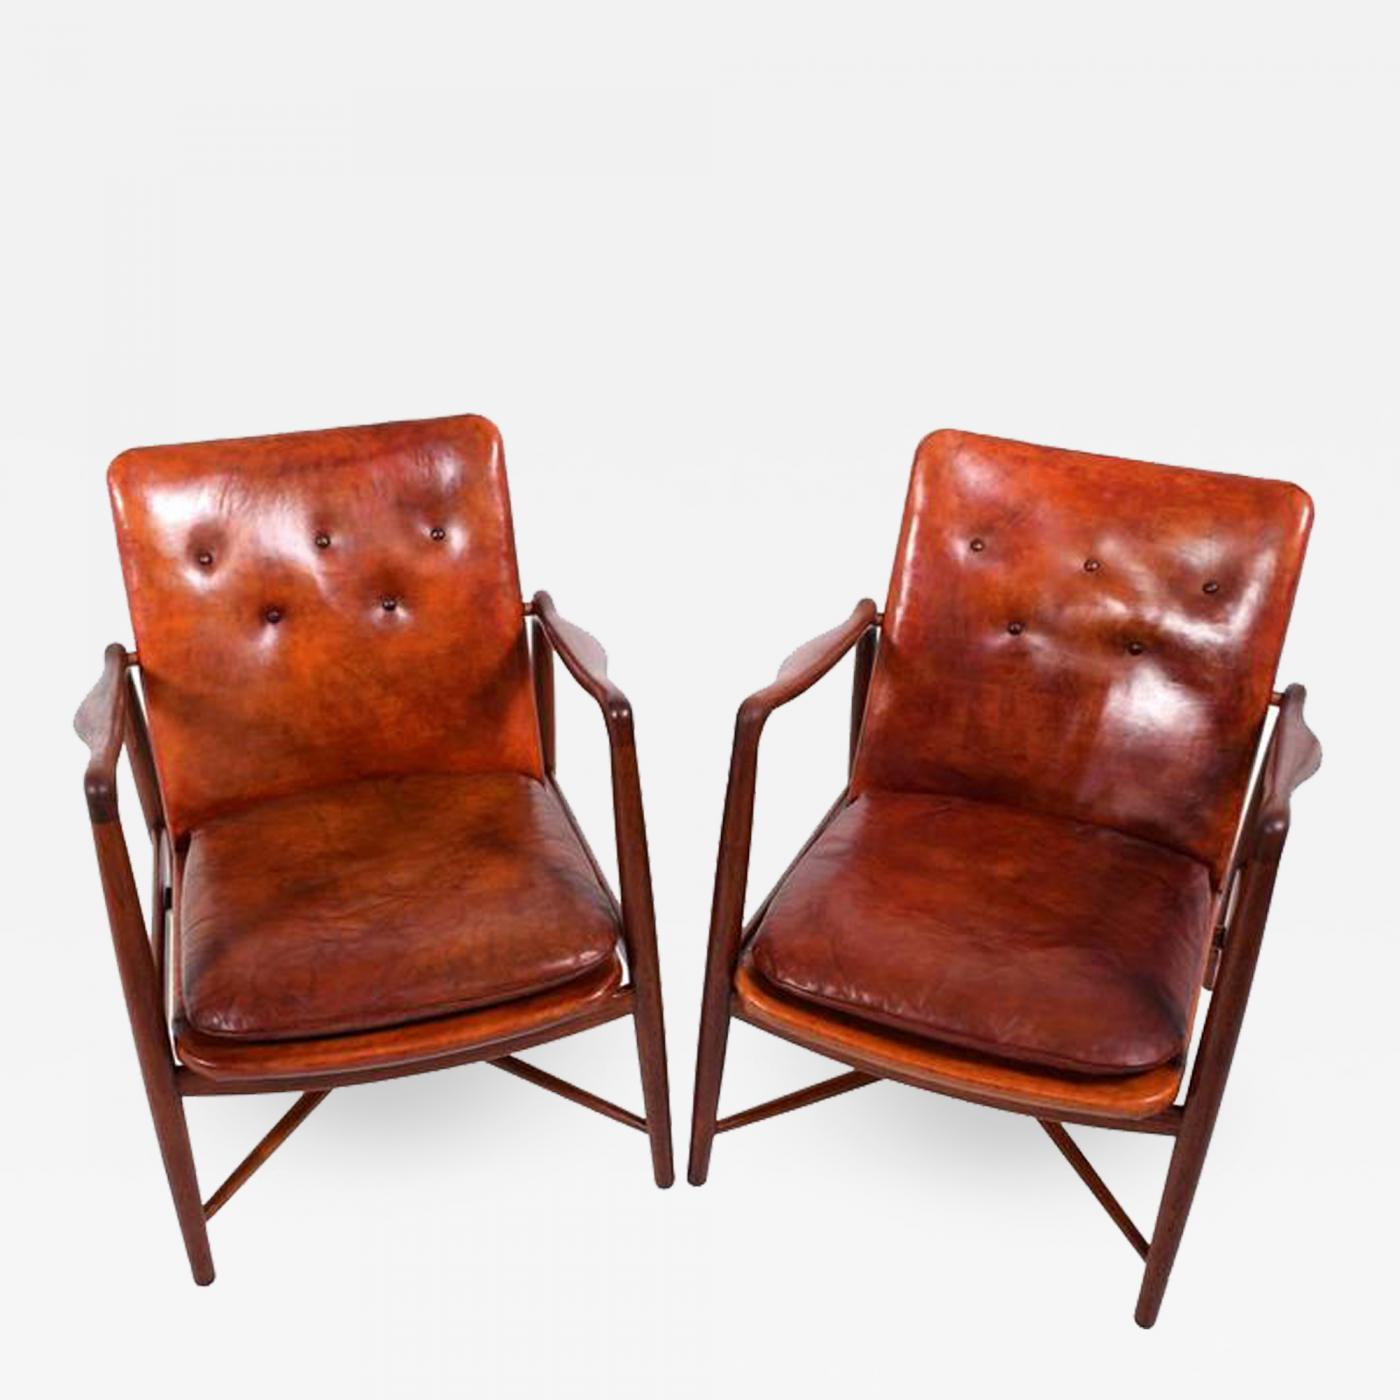 Want more Images? & Finn Juhl - Pair of Finn Juhl Chairs for Bovirke 1946